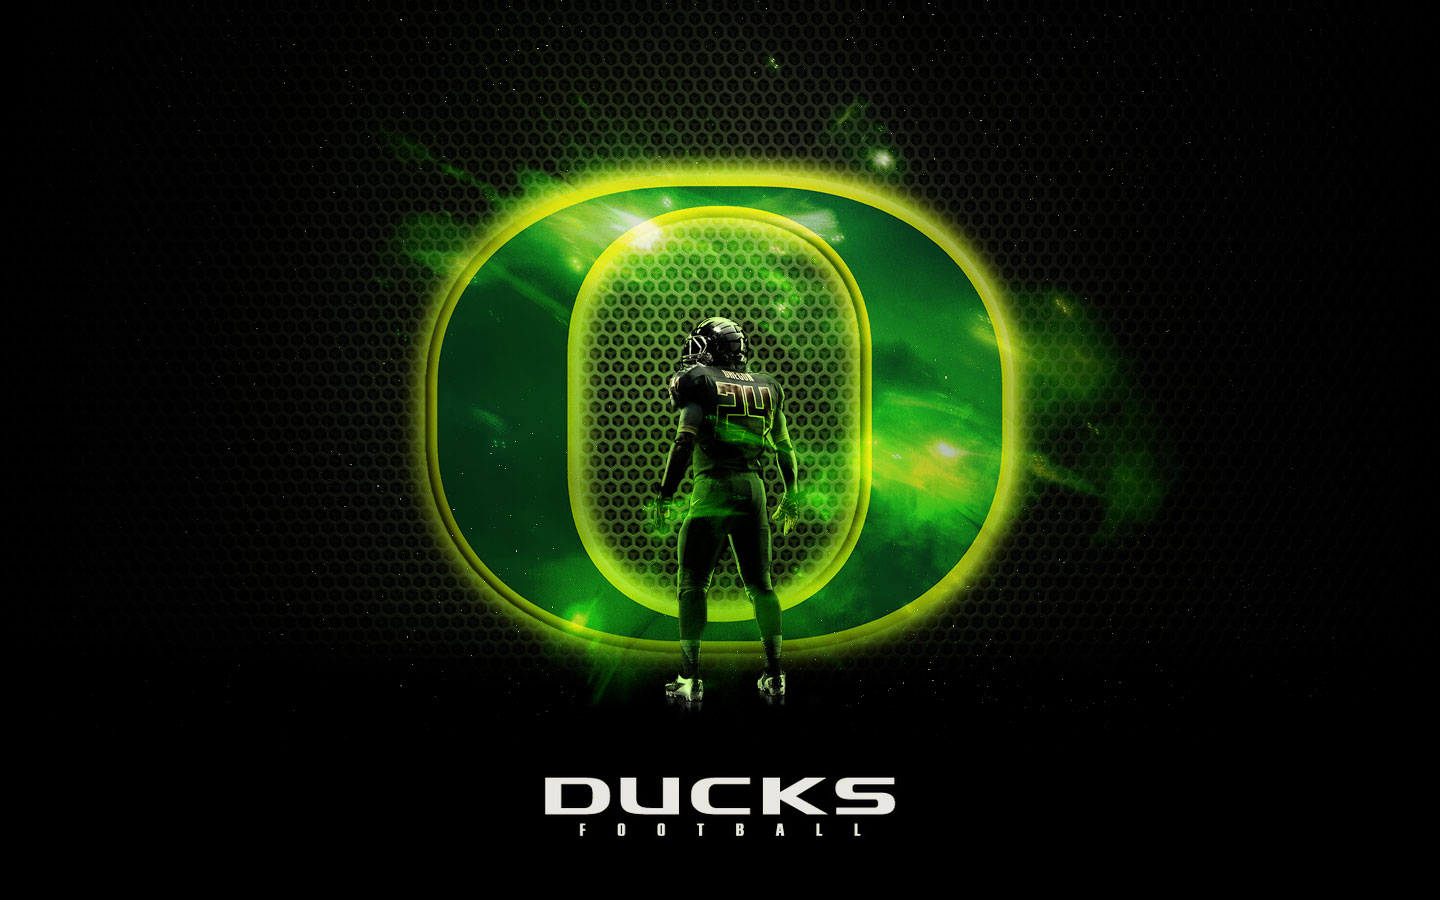 http://1.bp.blogspot.com/-GyjcKcRw_Vo/UJZ5FFfVqSI/AAAAAAAAAVU/c0mUJV31Cvs/s1600/ducks_football_wallpaper.jpg